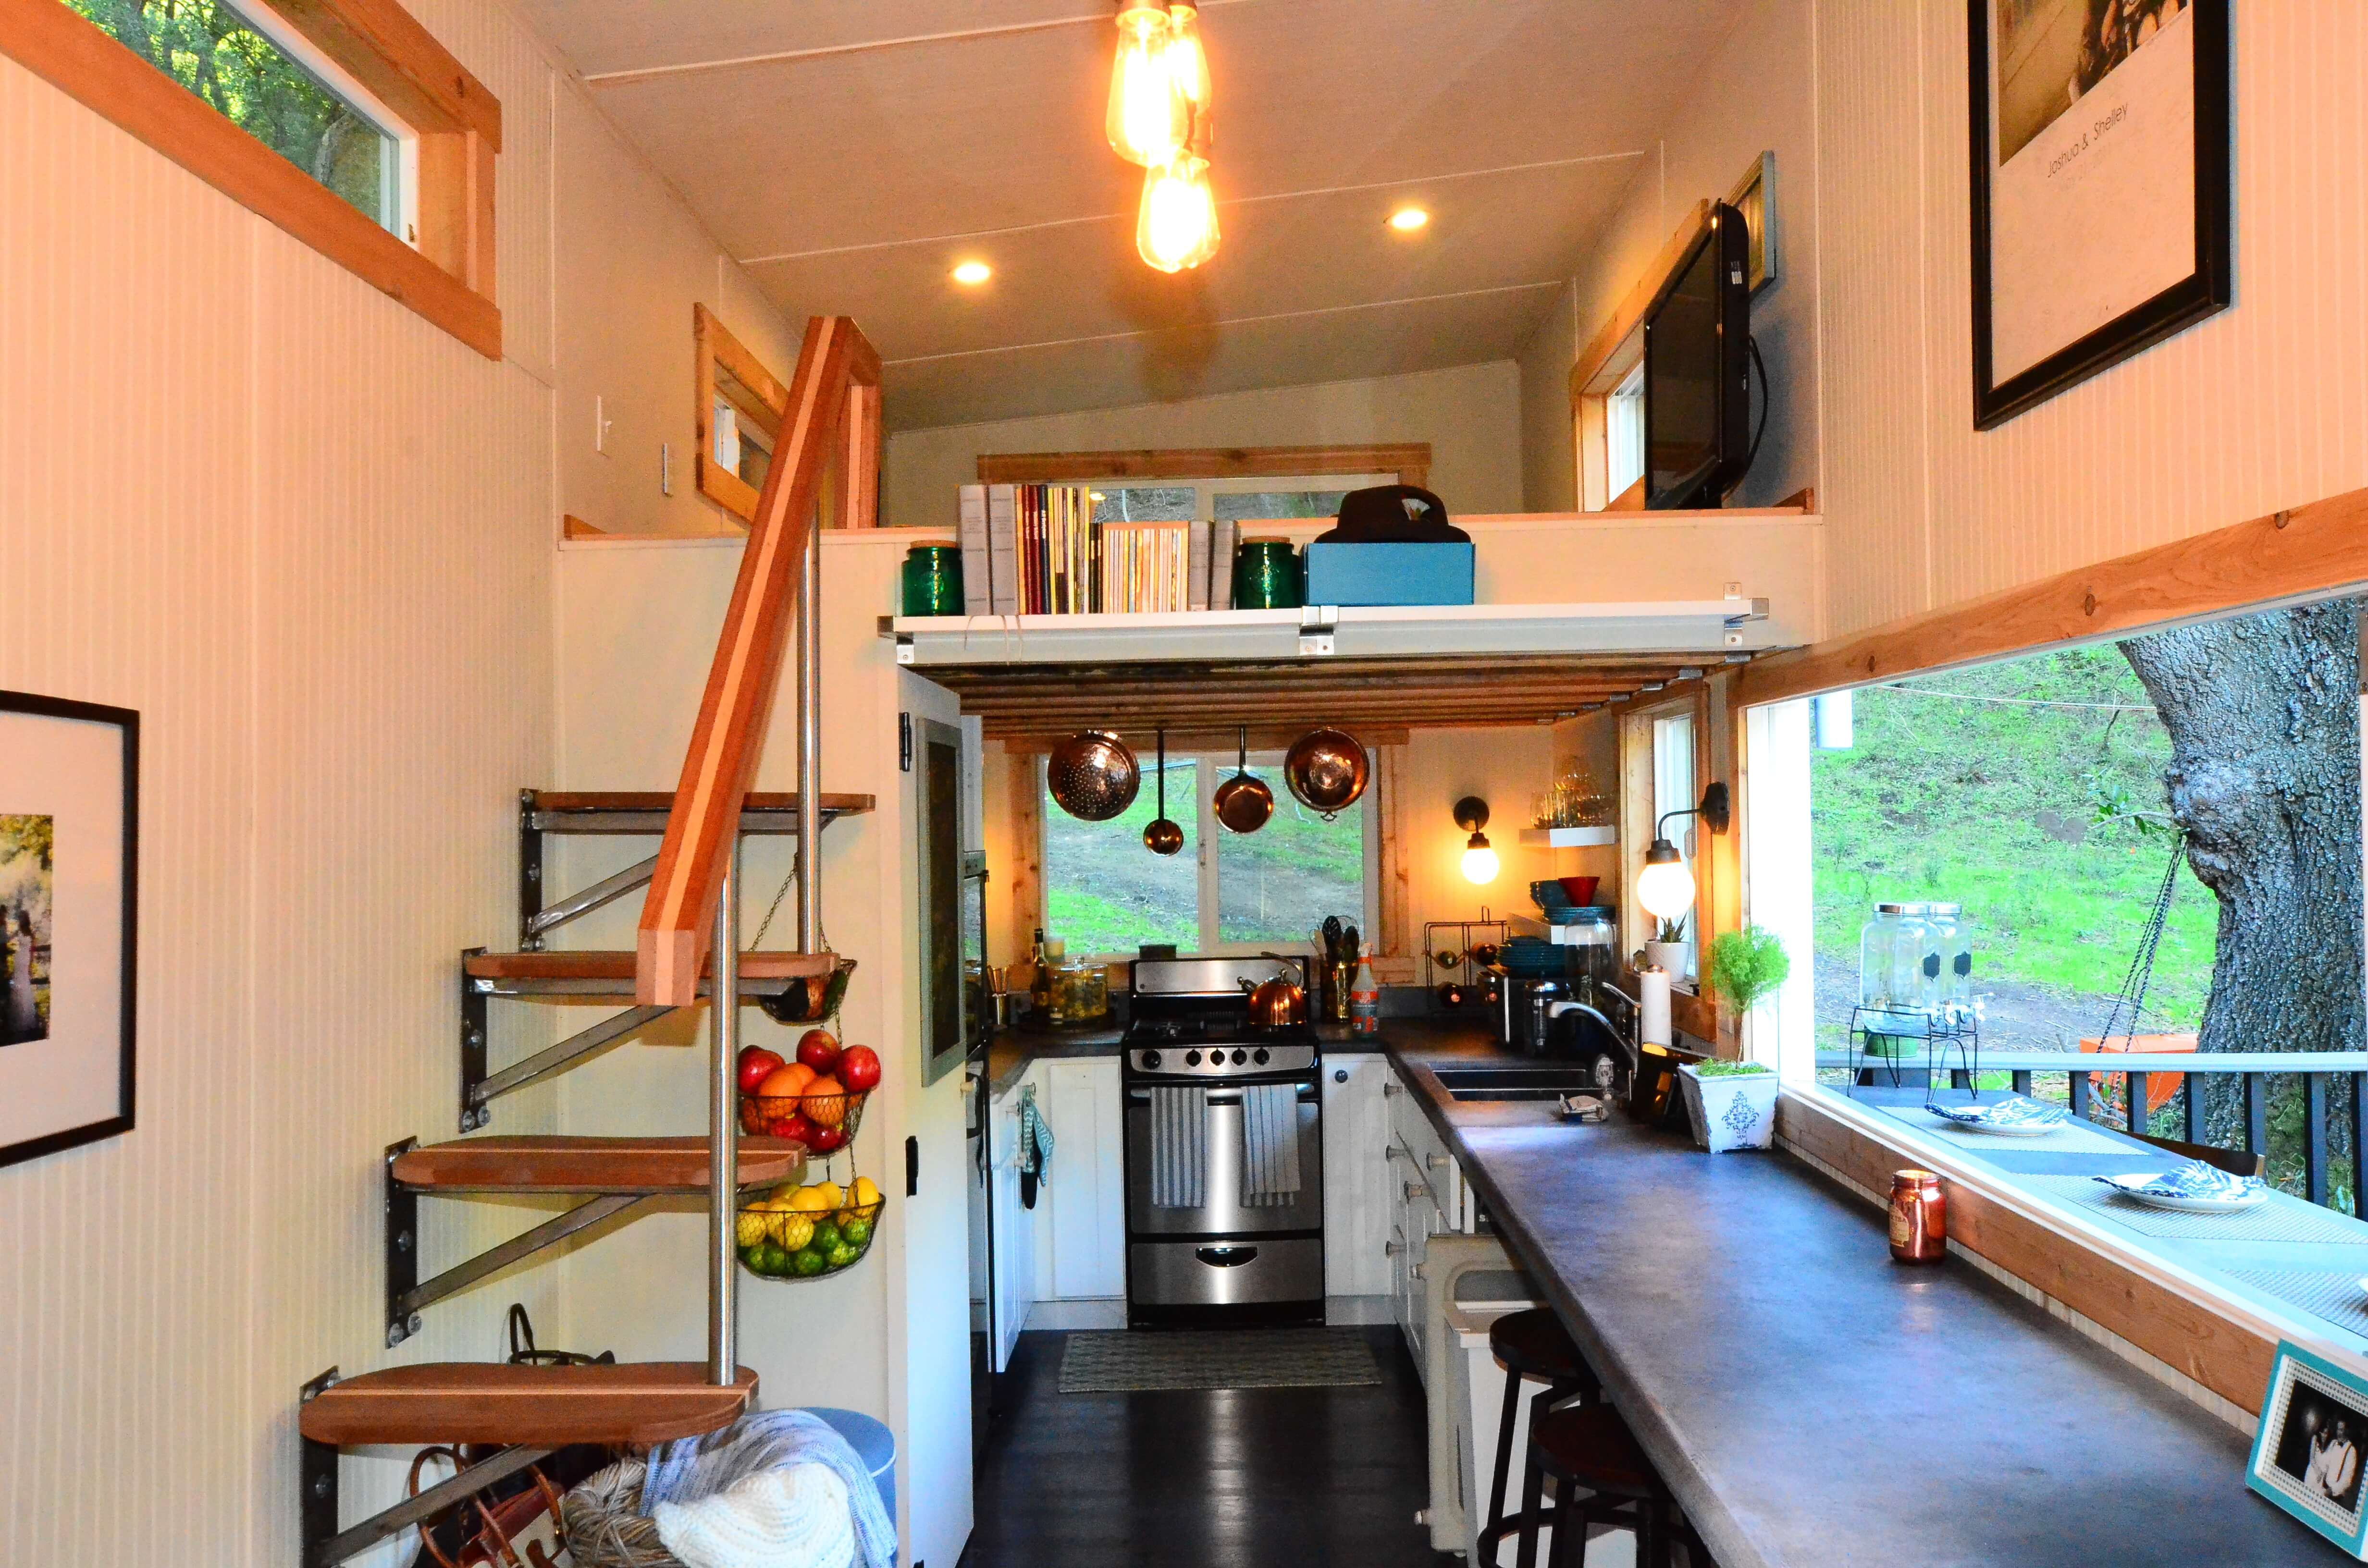 Small Homes Interior Tiny House Walk Through Interior Tiny House Basics